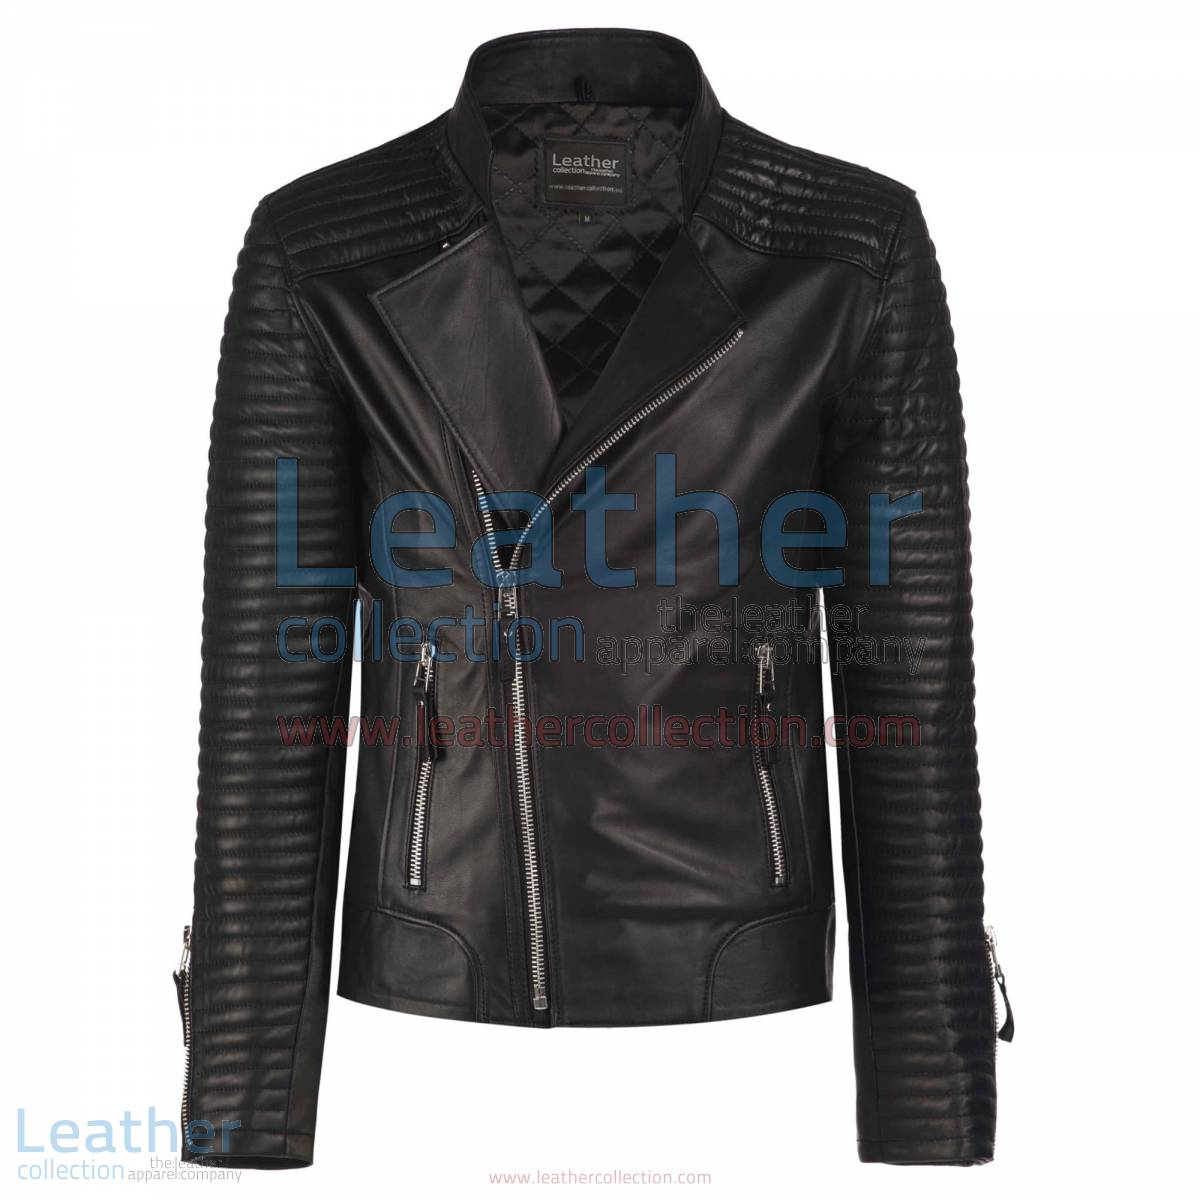 The Hunter Biker Leather Jacket | hunter biker jacket